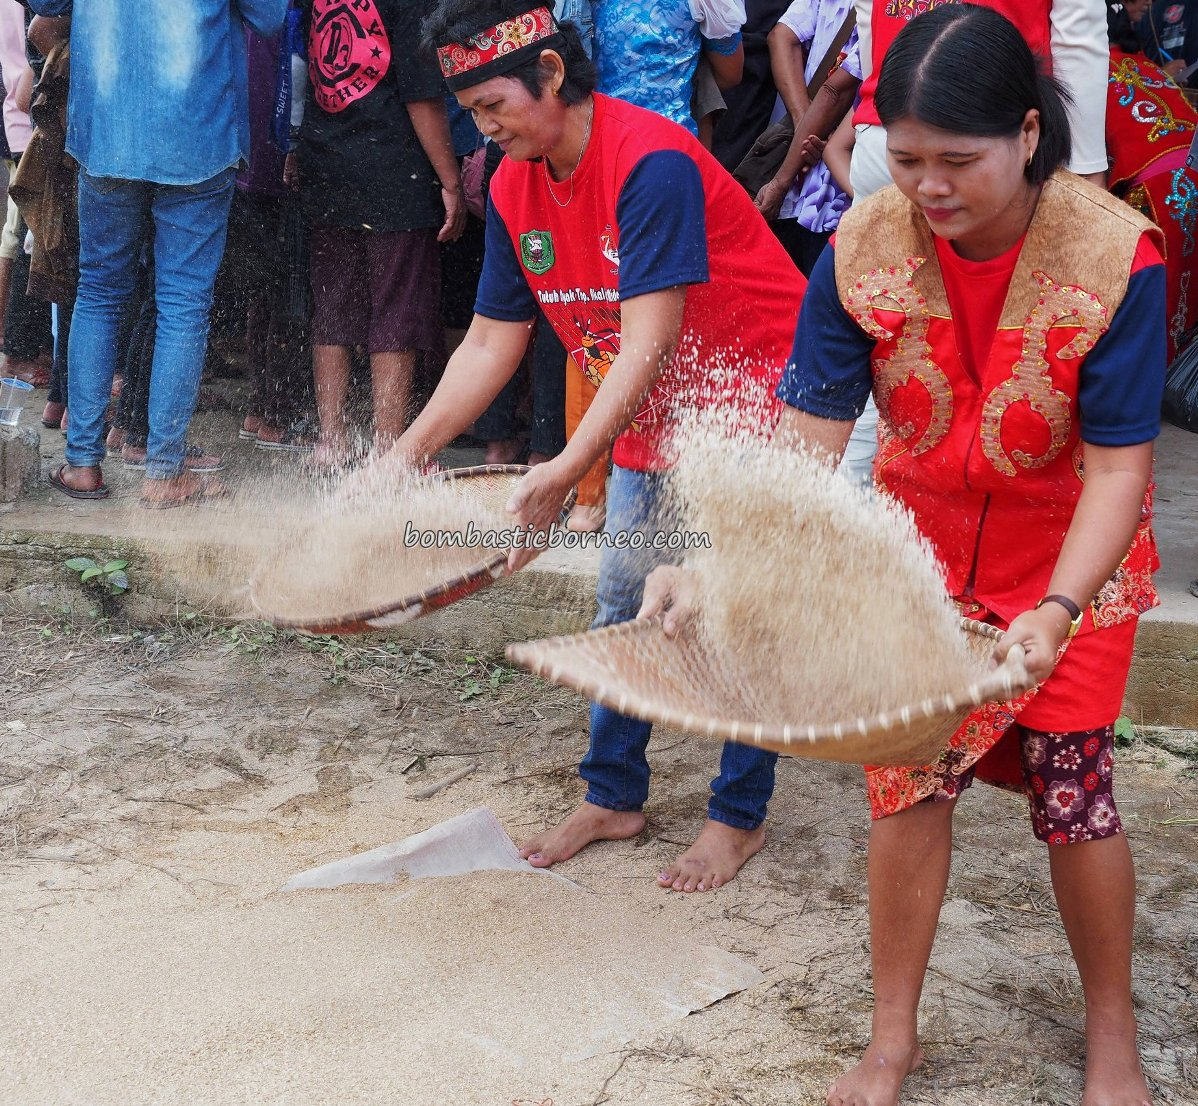 Sanggau, paddy harvest festival, thanksgiving, traditional, backpackers, event, culture, Indonesia, native, tribal, budaya, Tourism, travel guide, 婆罗洲印尼西加里曼丹, 传统土著丰收节日